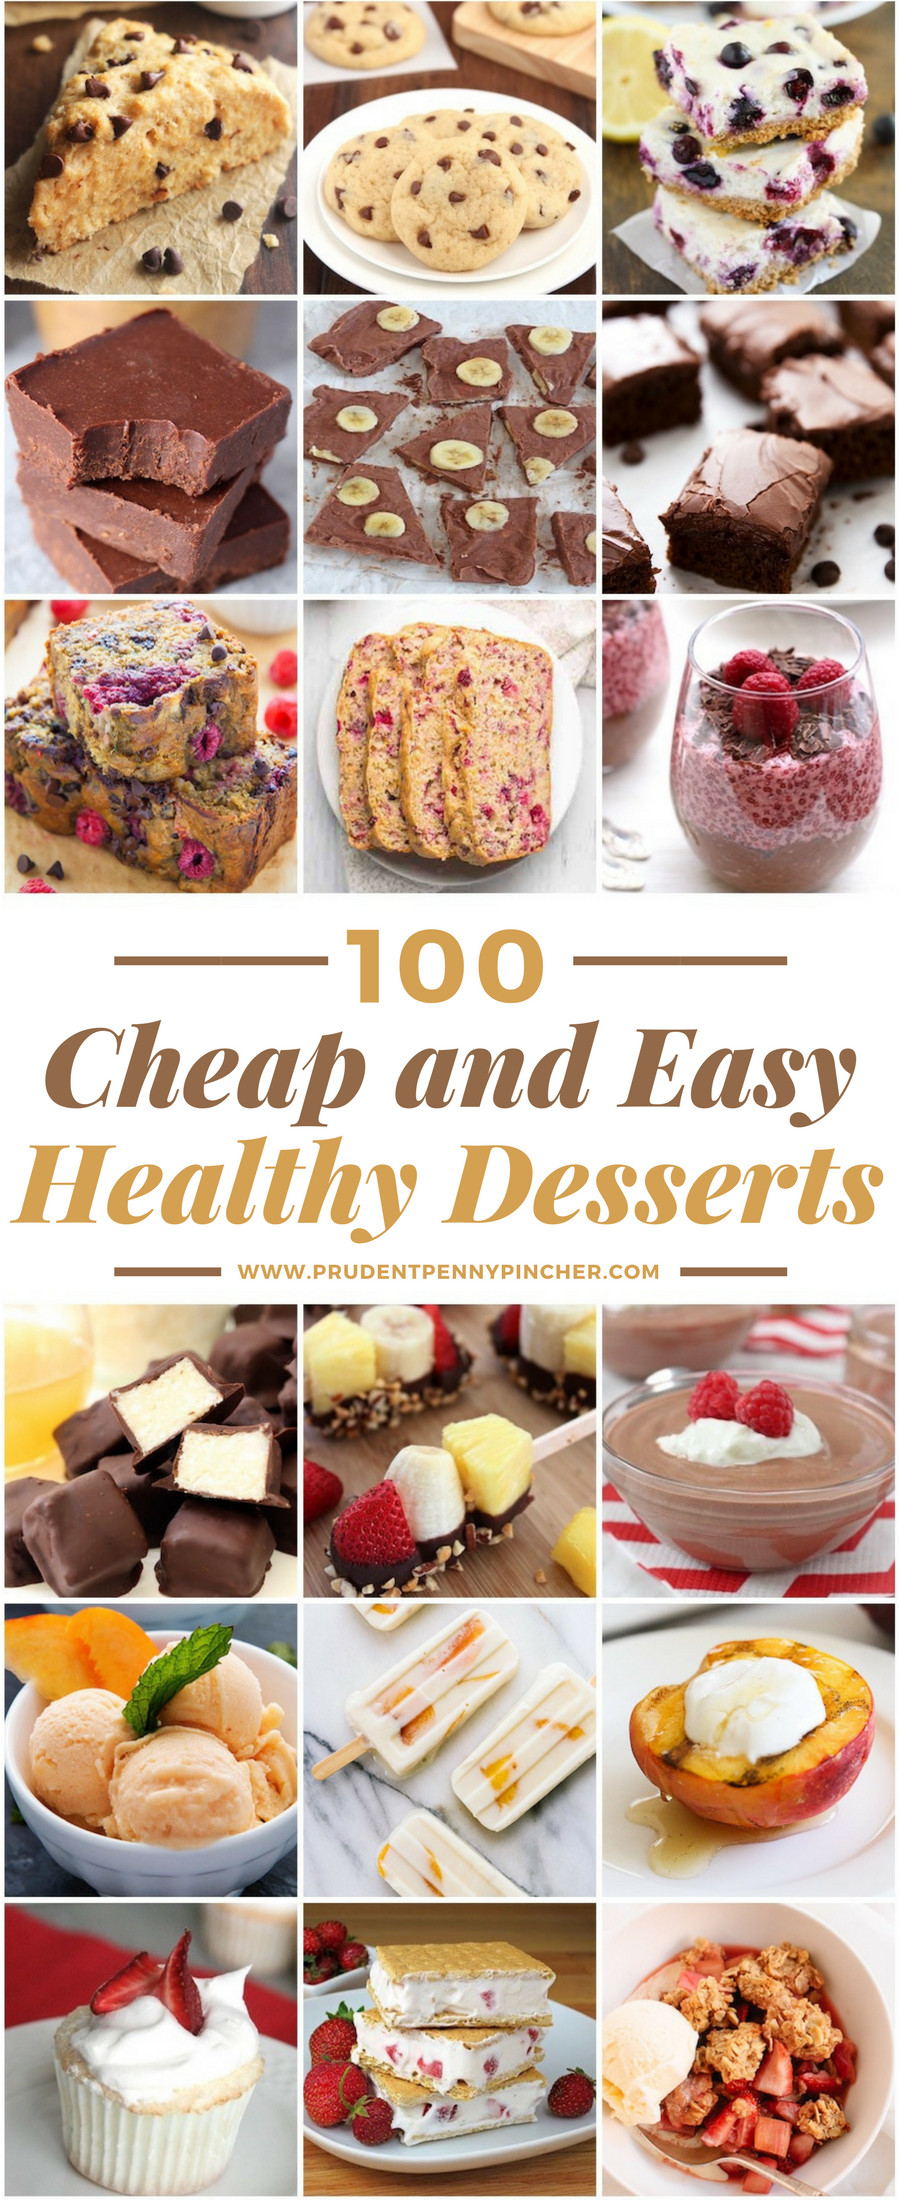 Cheap Healthy Desserts  100 Cheap and Easy Healthy Desserts Prudent Penny Pincher